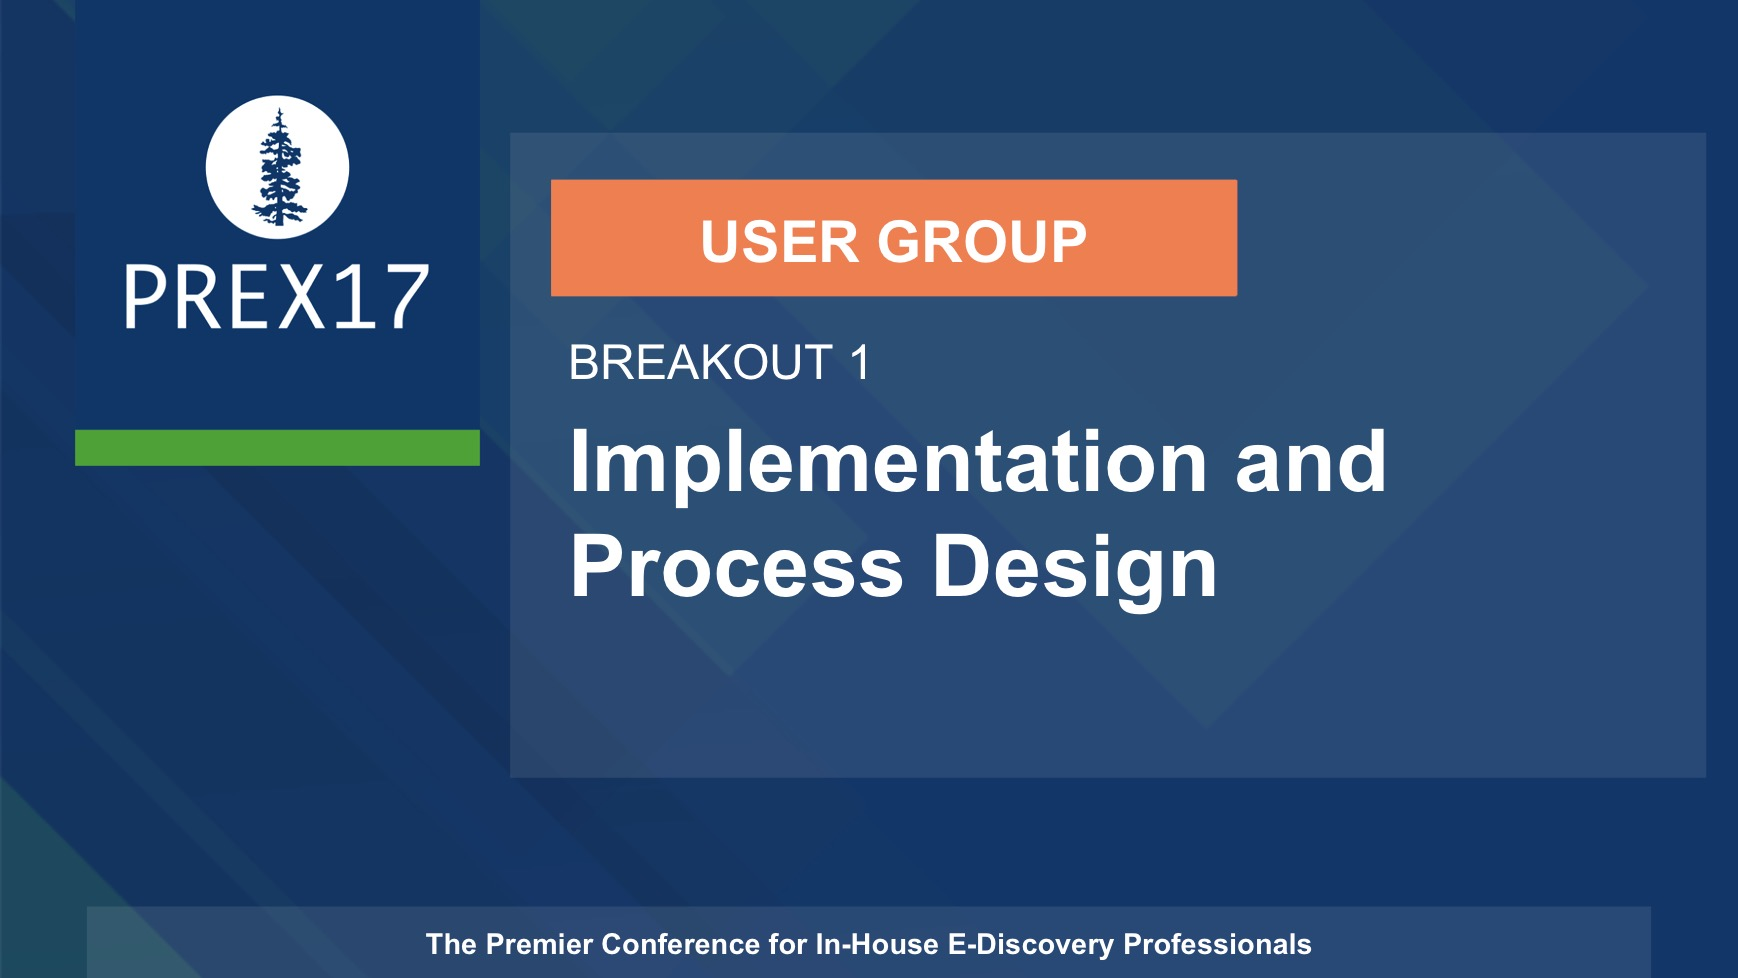 USER GROUP (Breakout 1) Implementation and Process Design